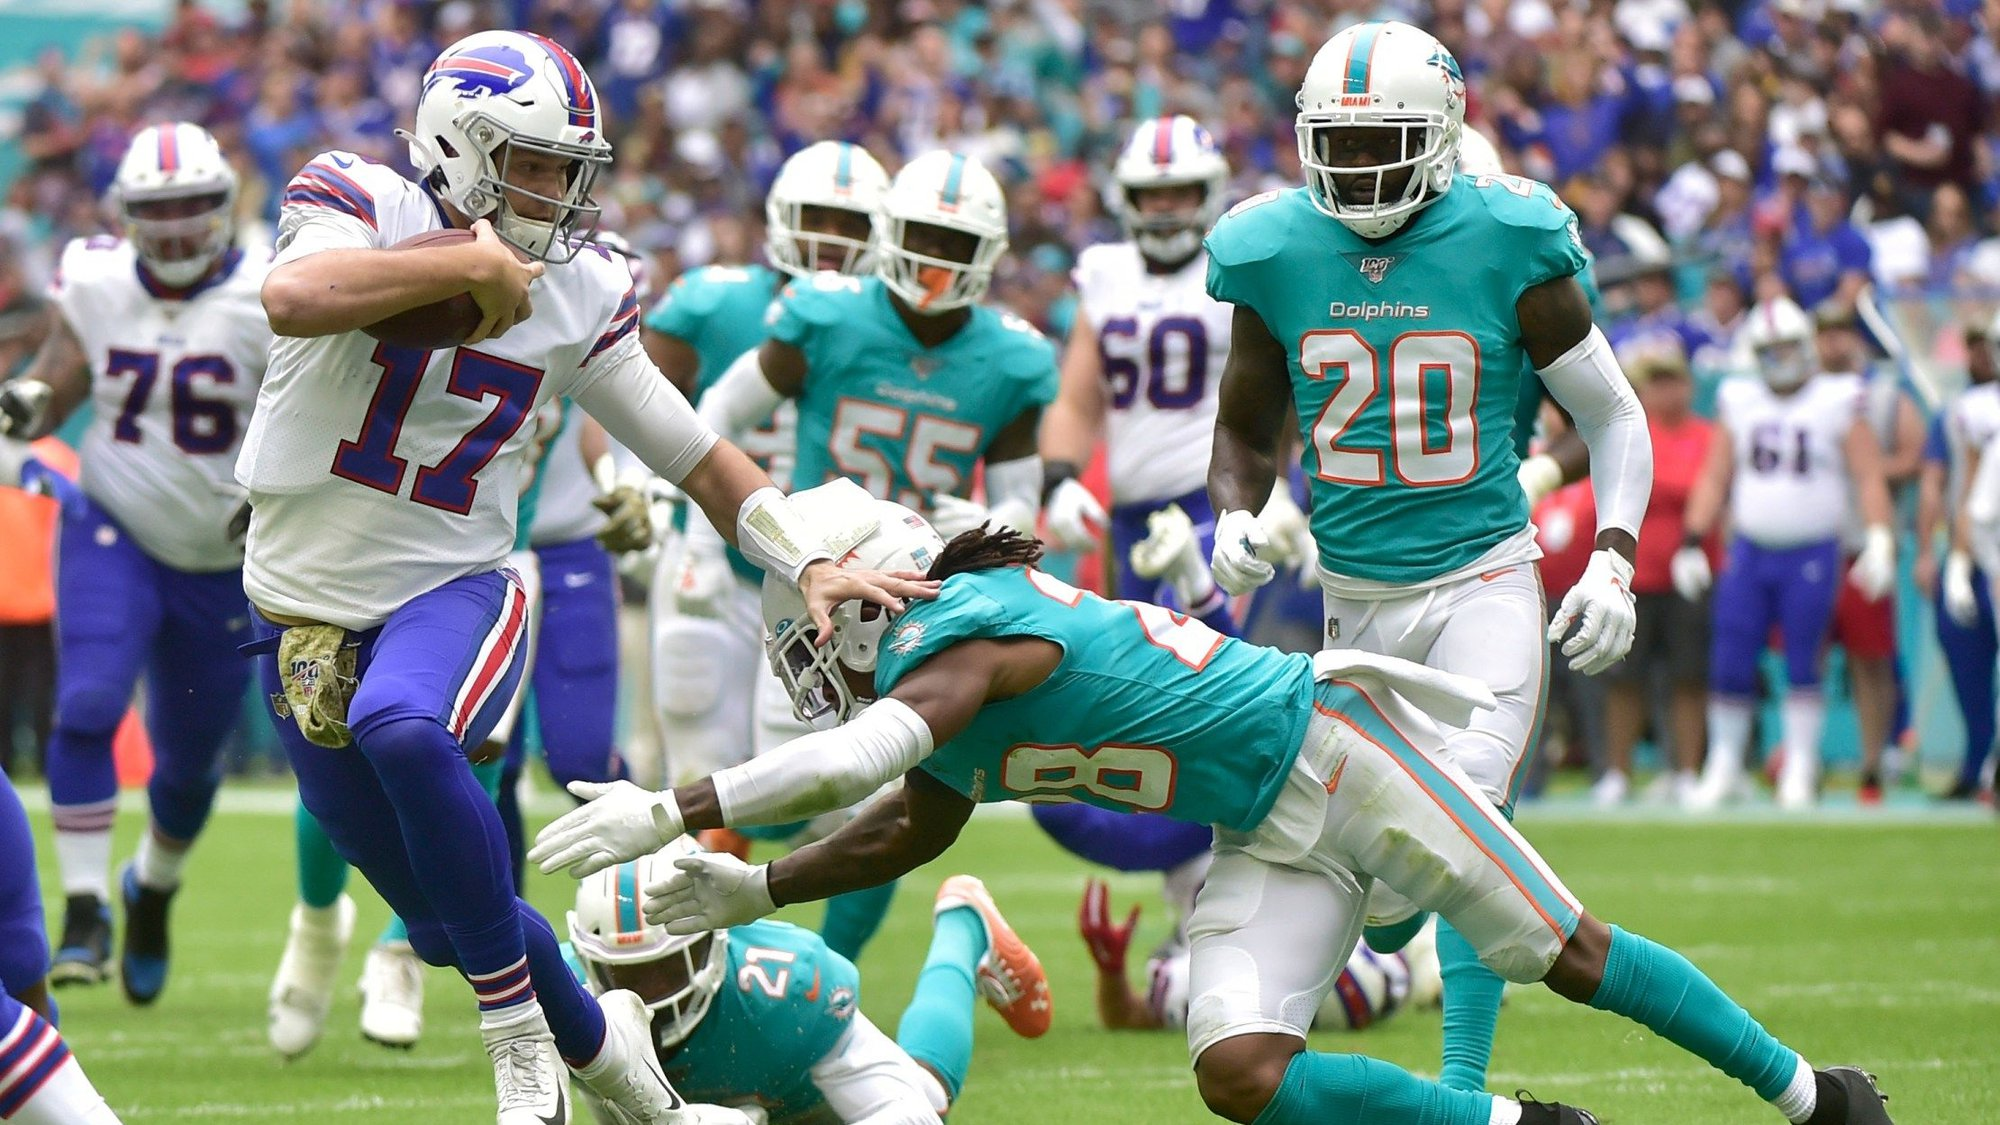 Buffalo Bills vs Miami Dolphins Betting Preview: Bills Look to Rebound and Assert Dominance in AFC East